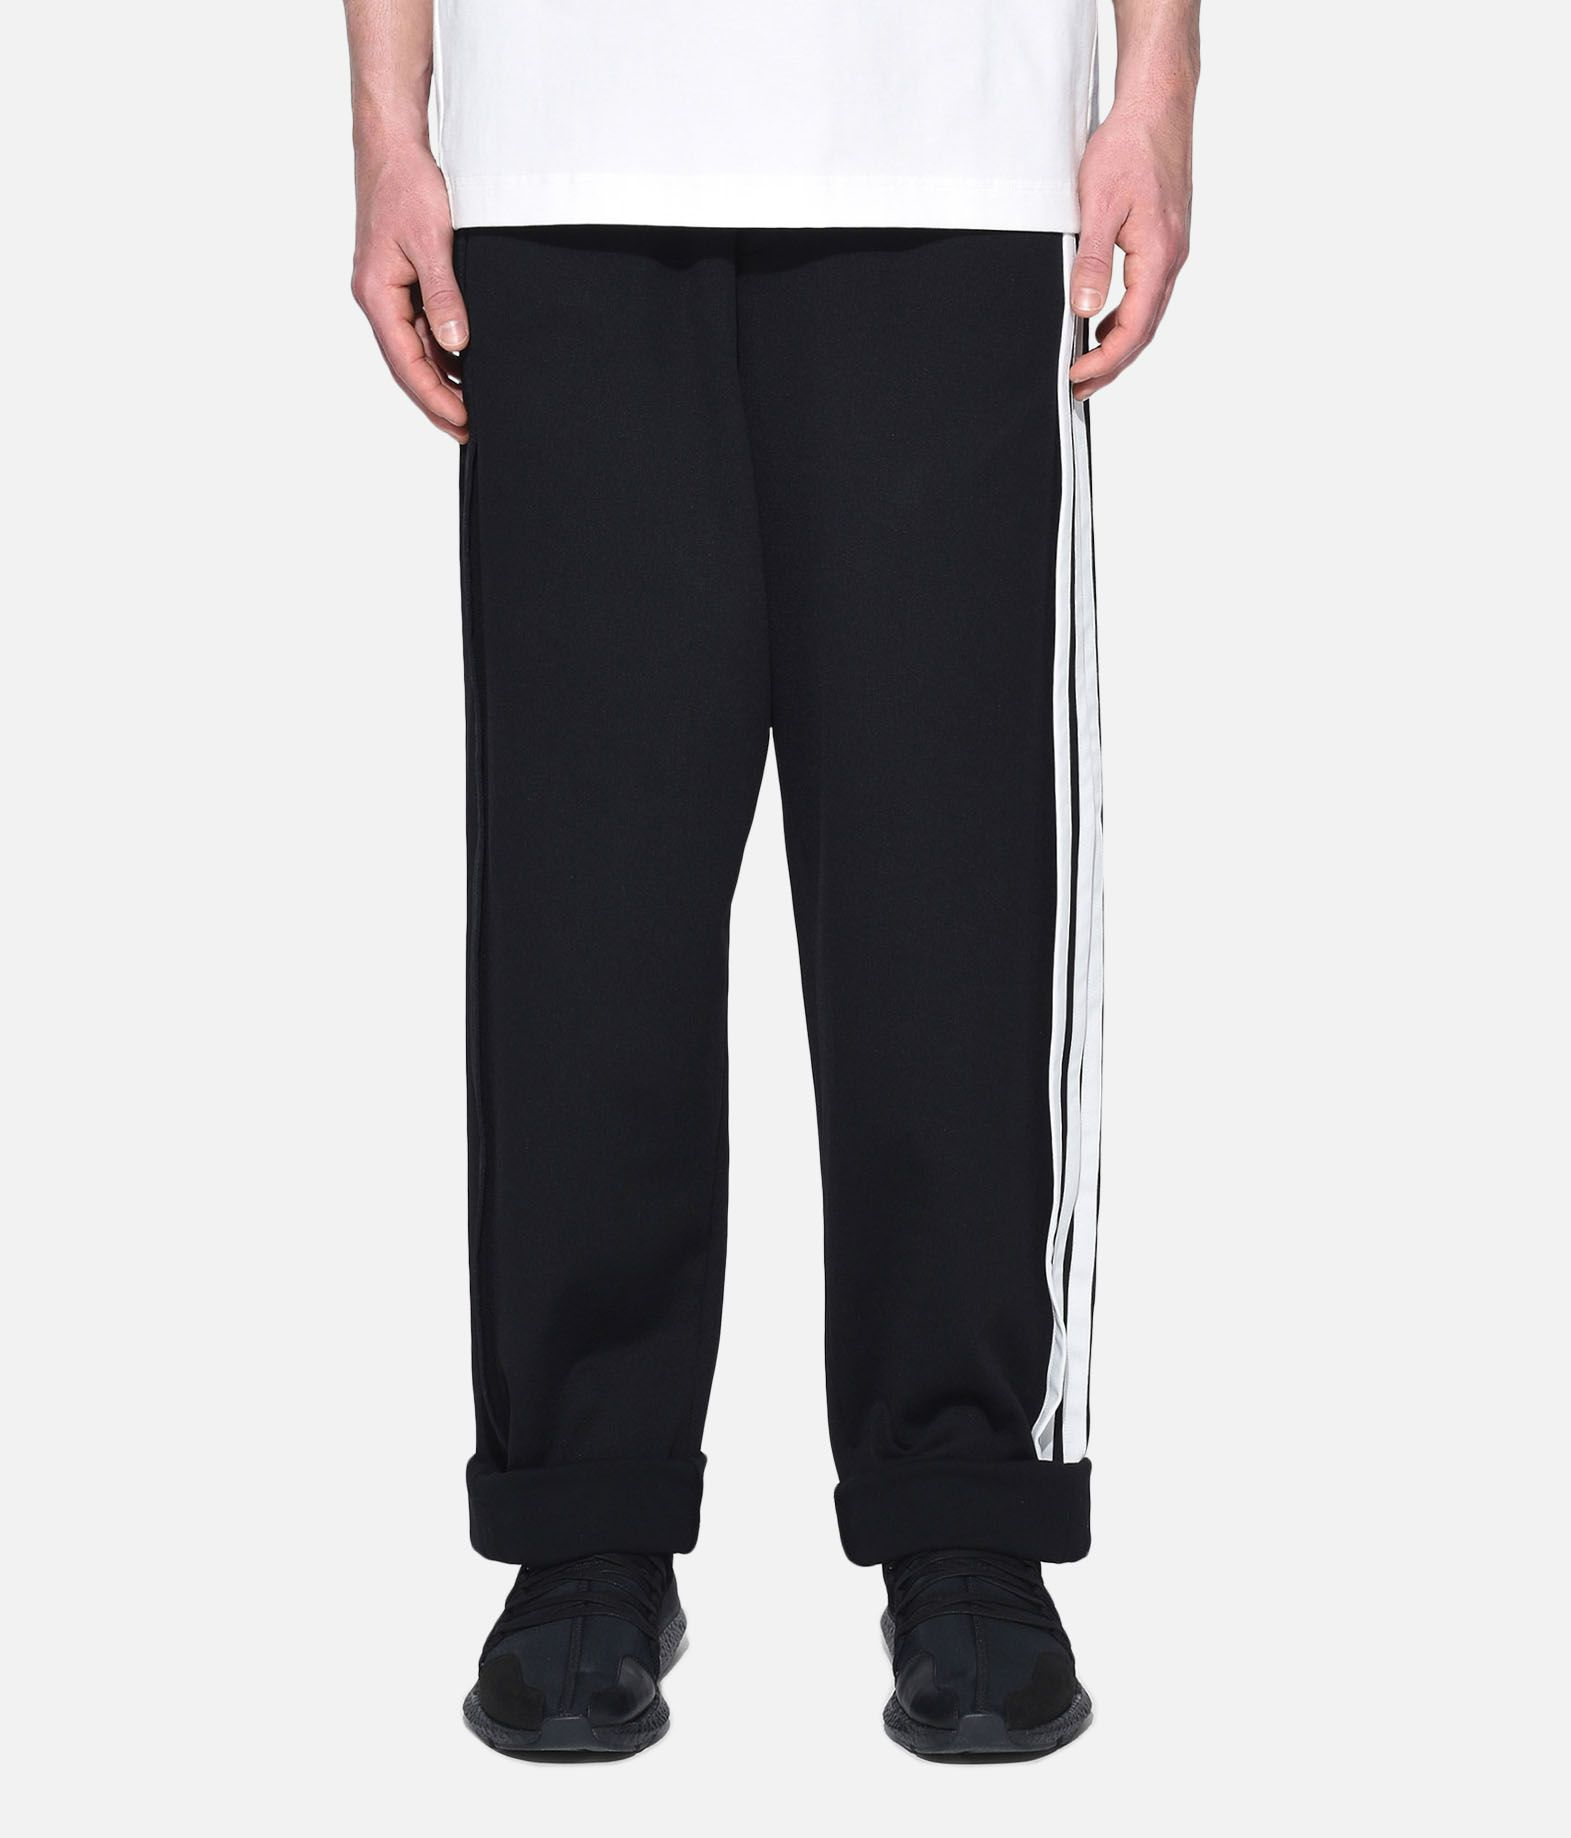 Y-3 Y-3 3-Stripes Selvedge Wide Pants Спортивные штаны Для Мужчин r